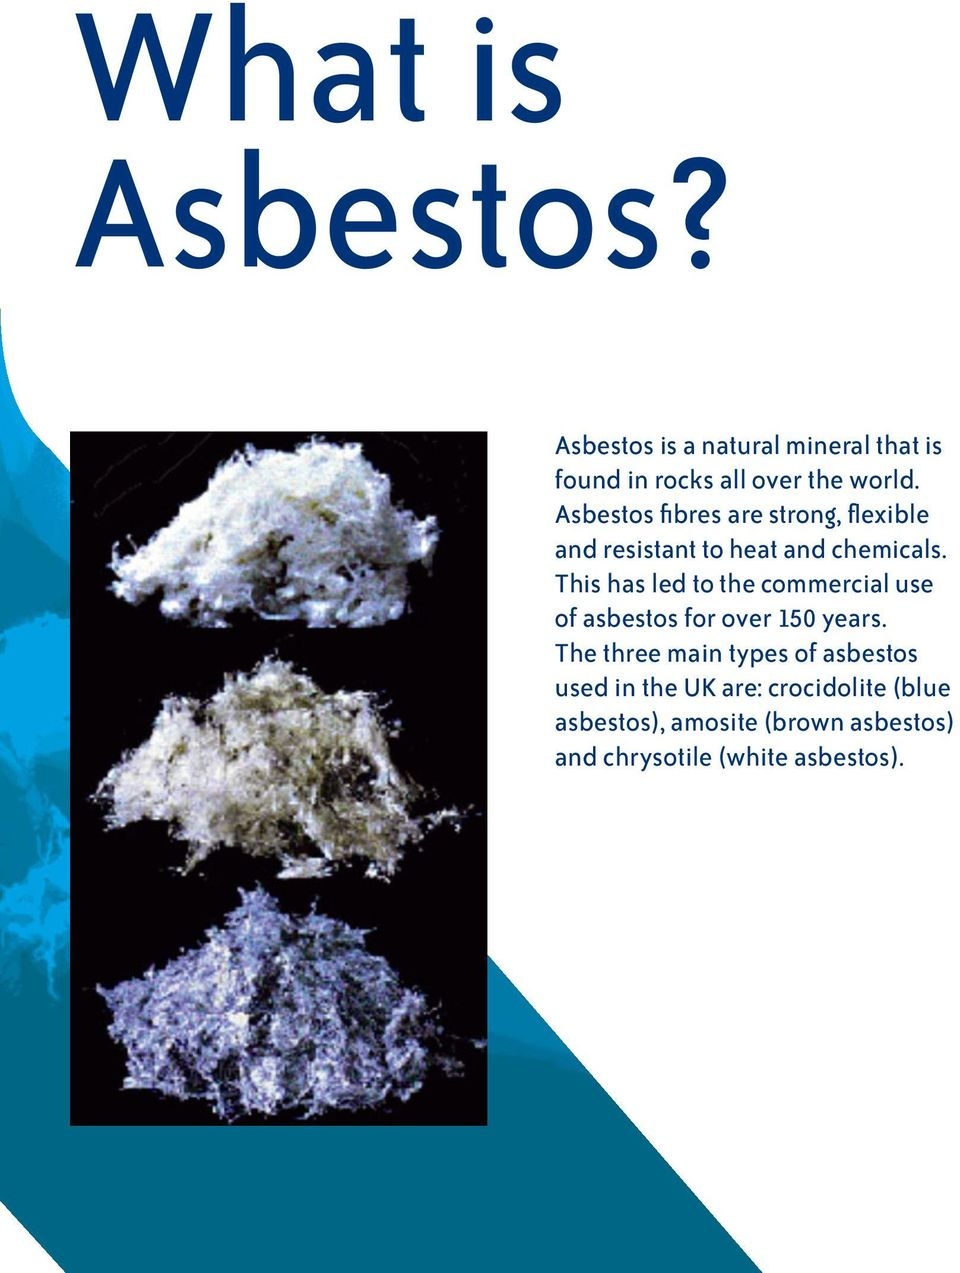 This has led to the commercial use of asbestos for over 150 years.